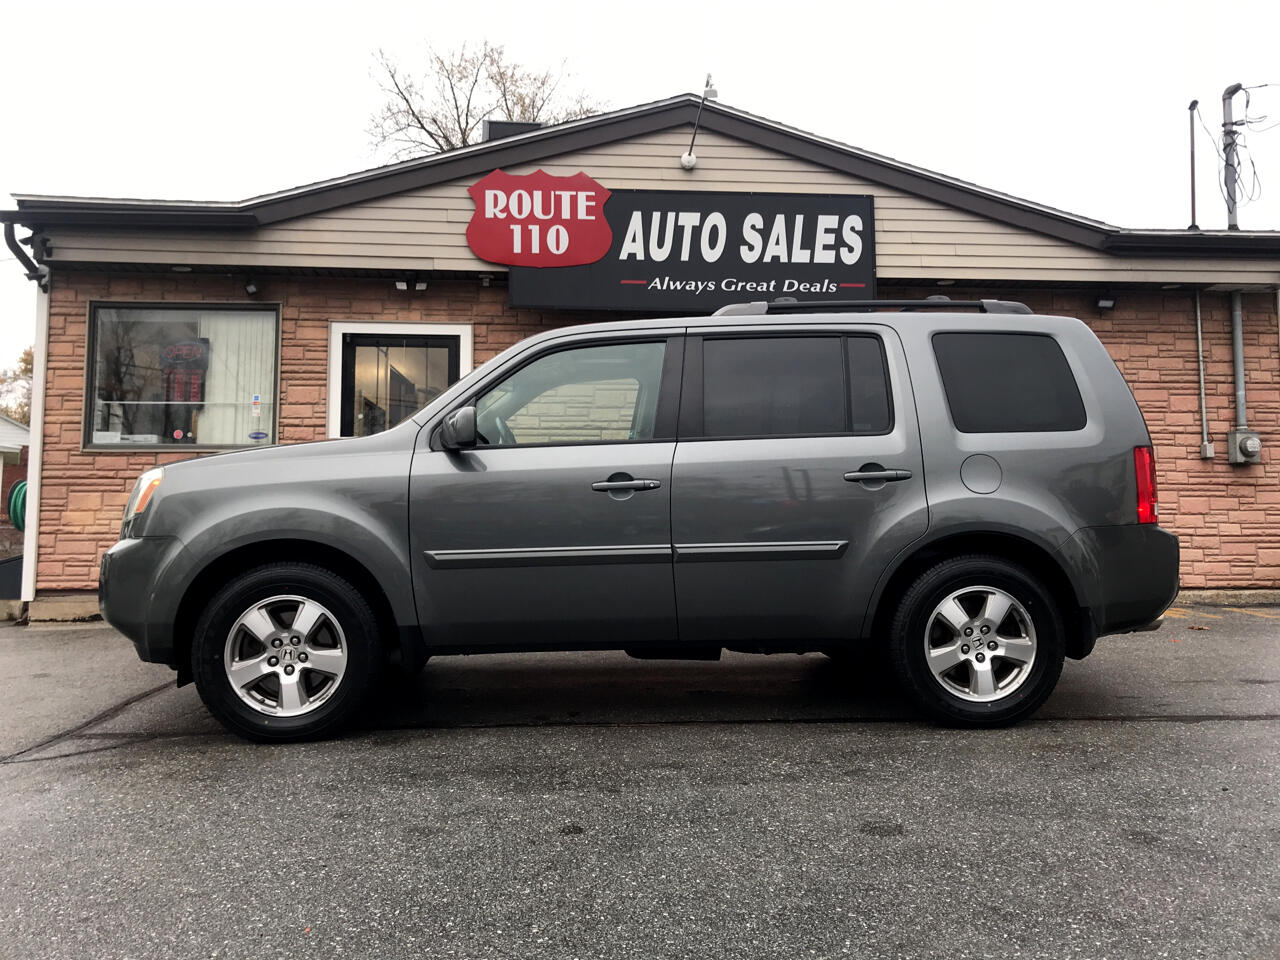 used cars for sale dracut ma 01826 route 110 auto sales